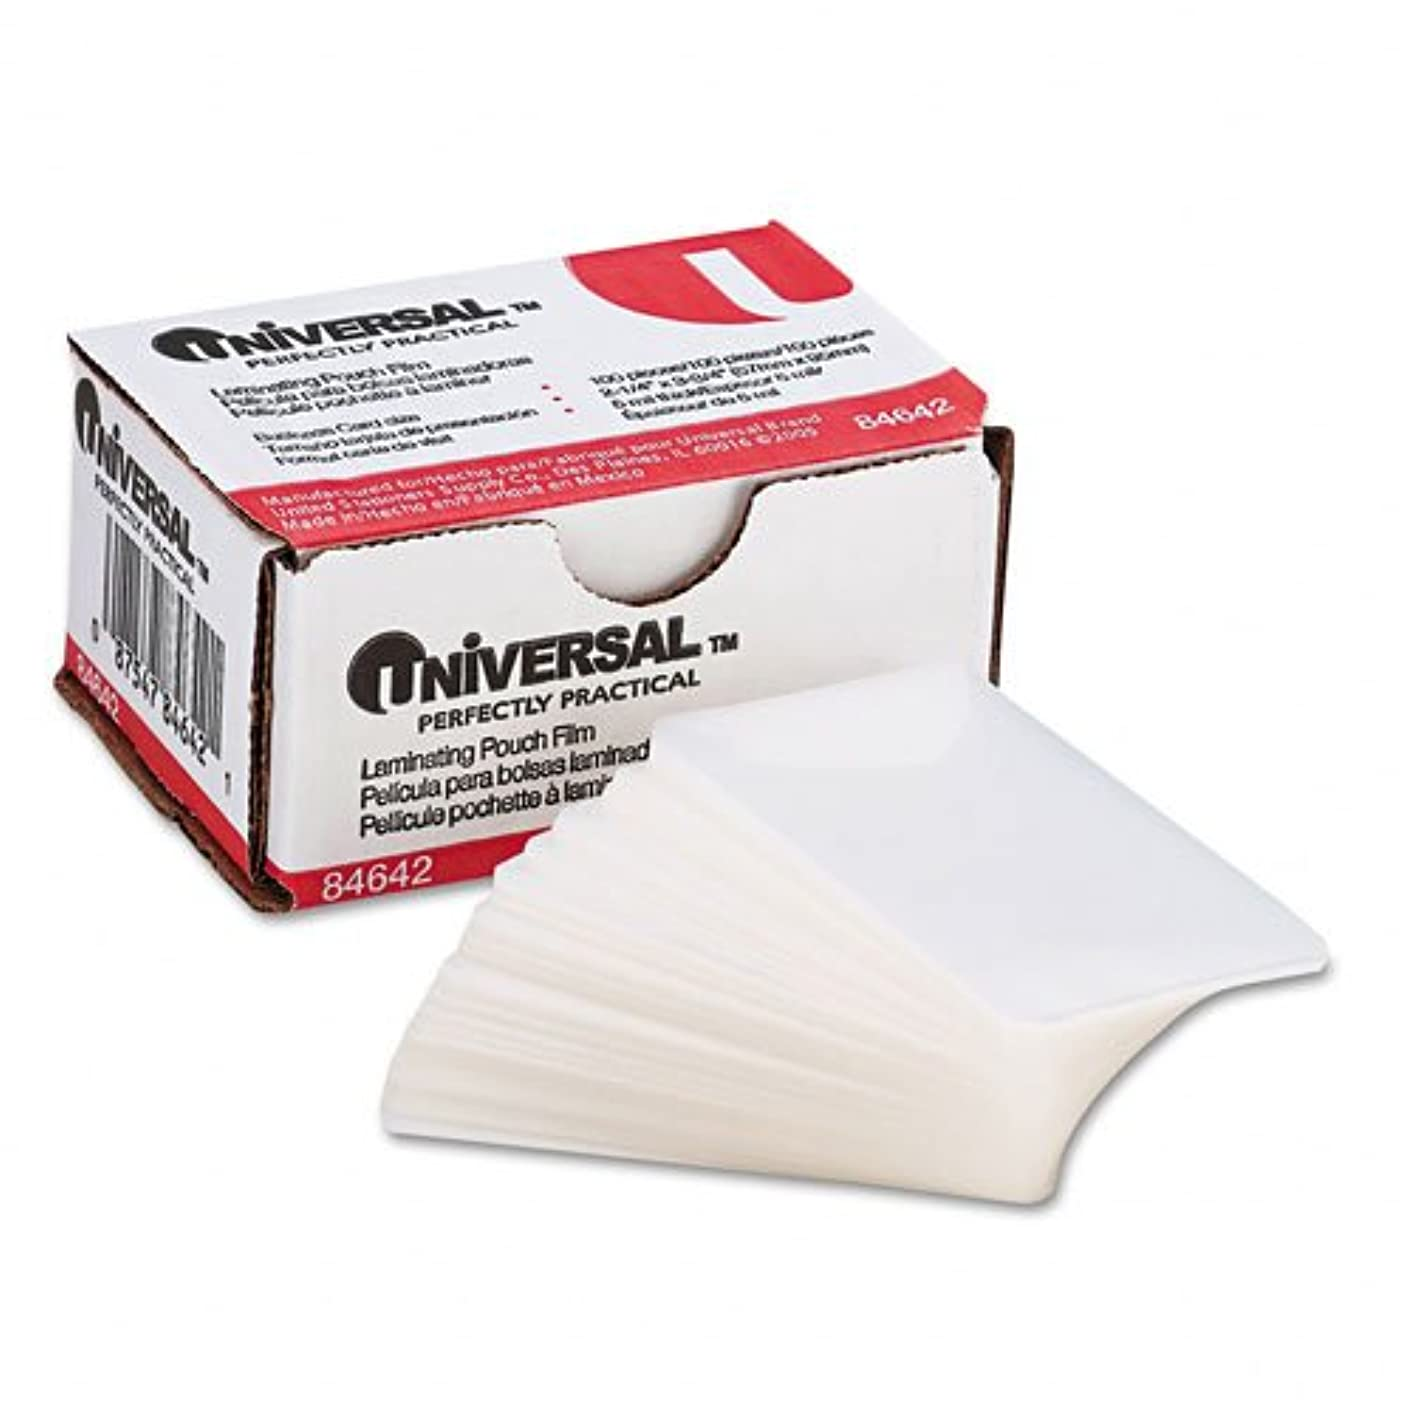 Universal : Clear Laminating Pouches, 5mm, 2-3/16 x 3-11/16, 100/box -:- Sold as 2 Packs of - 100 - / - Total of 200 Each